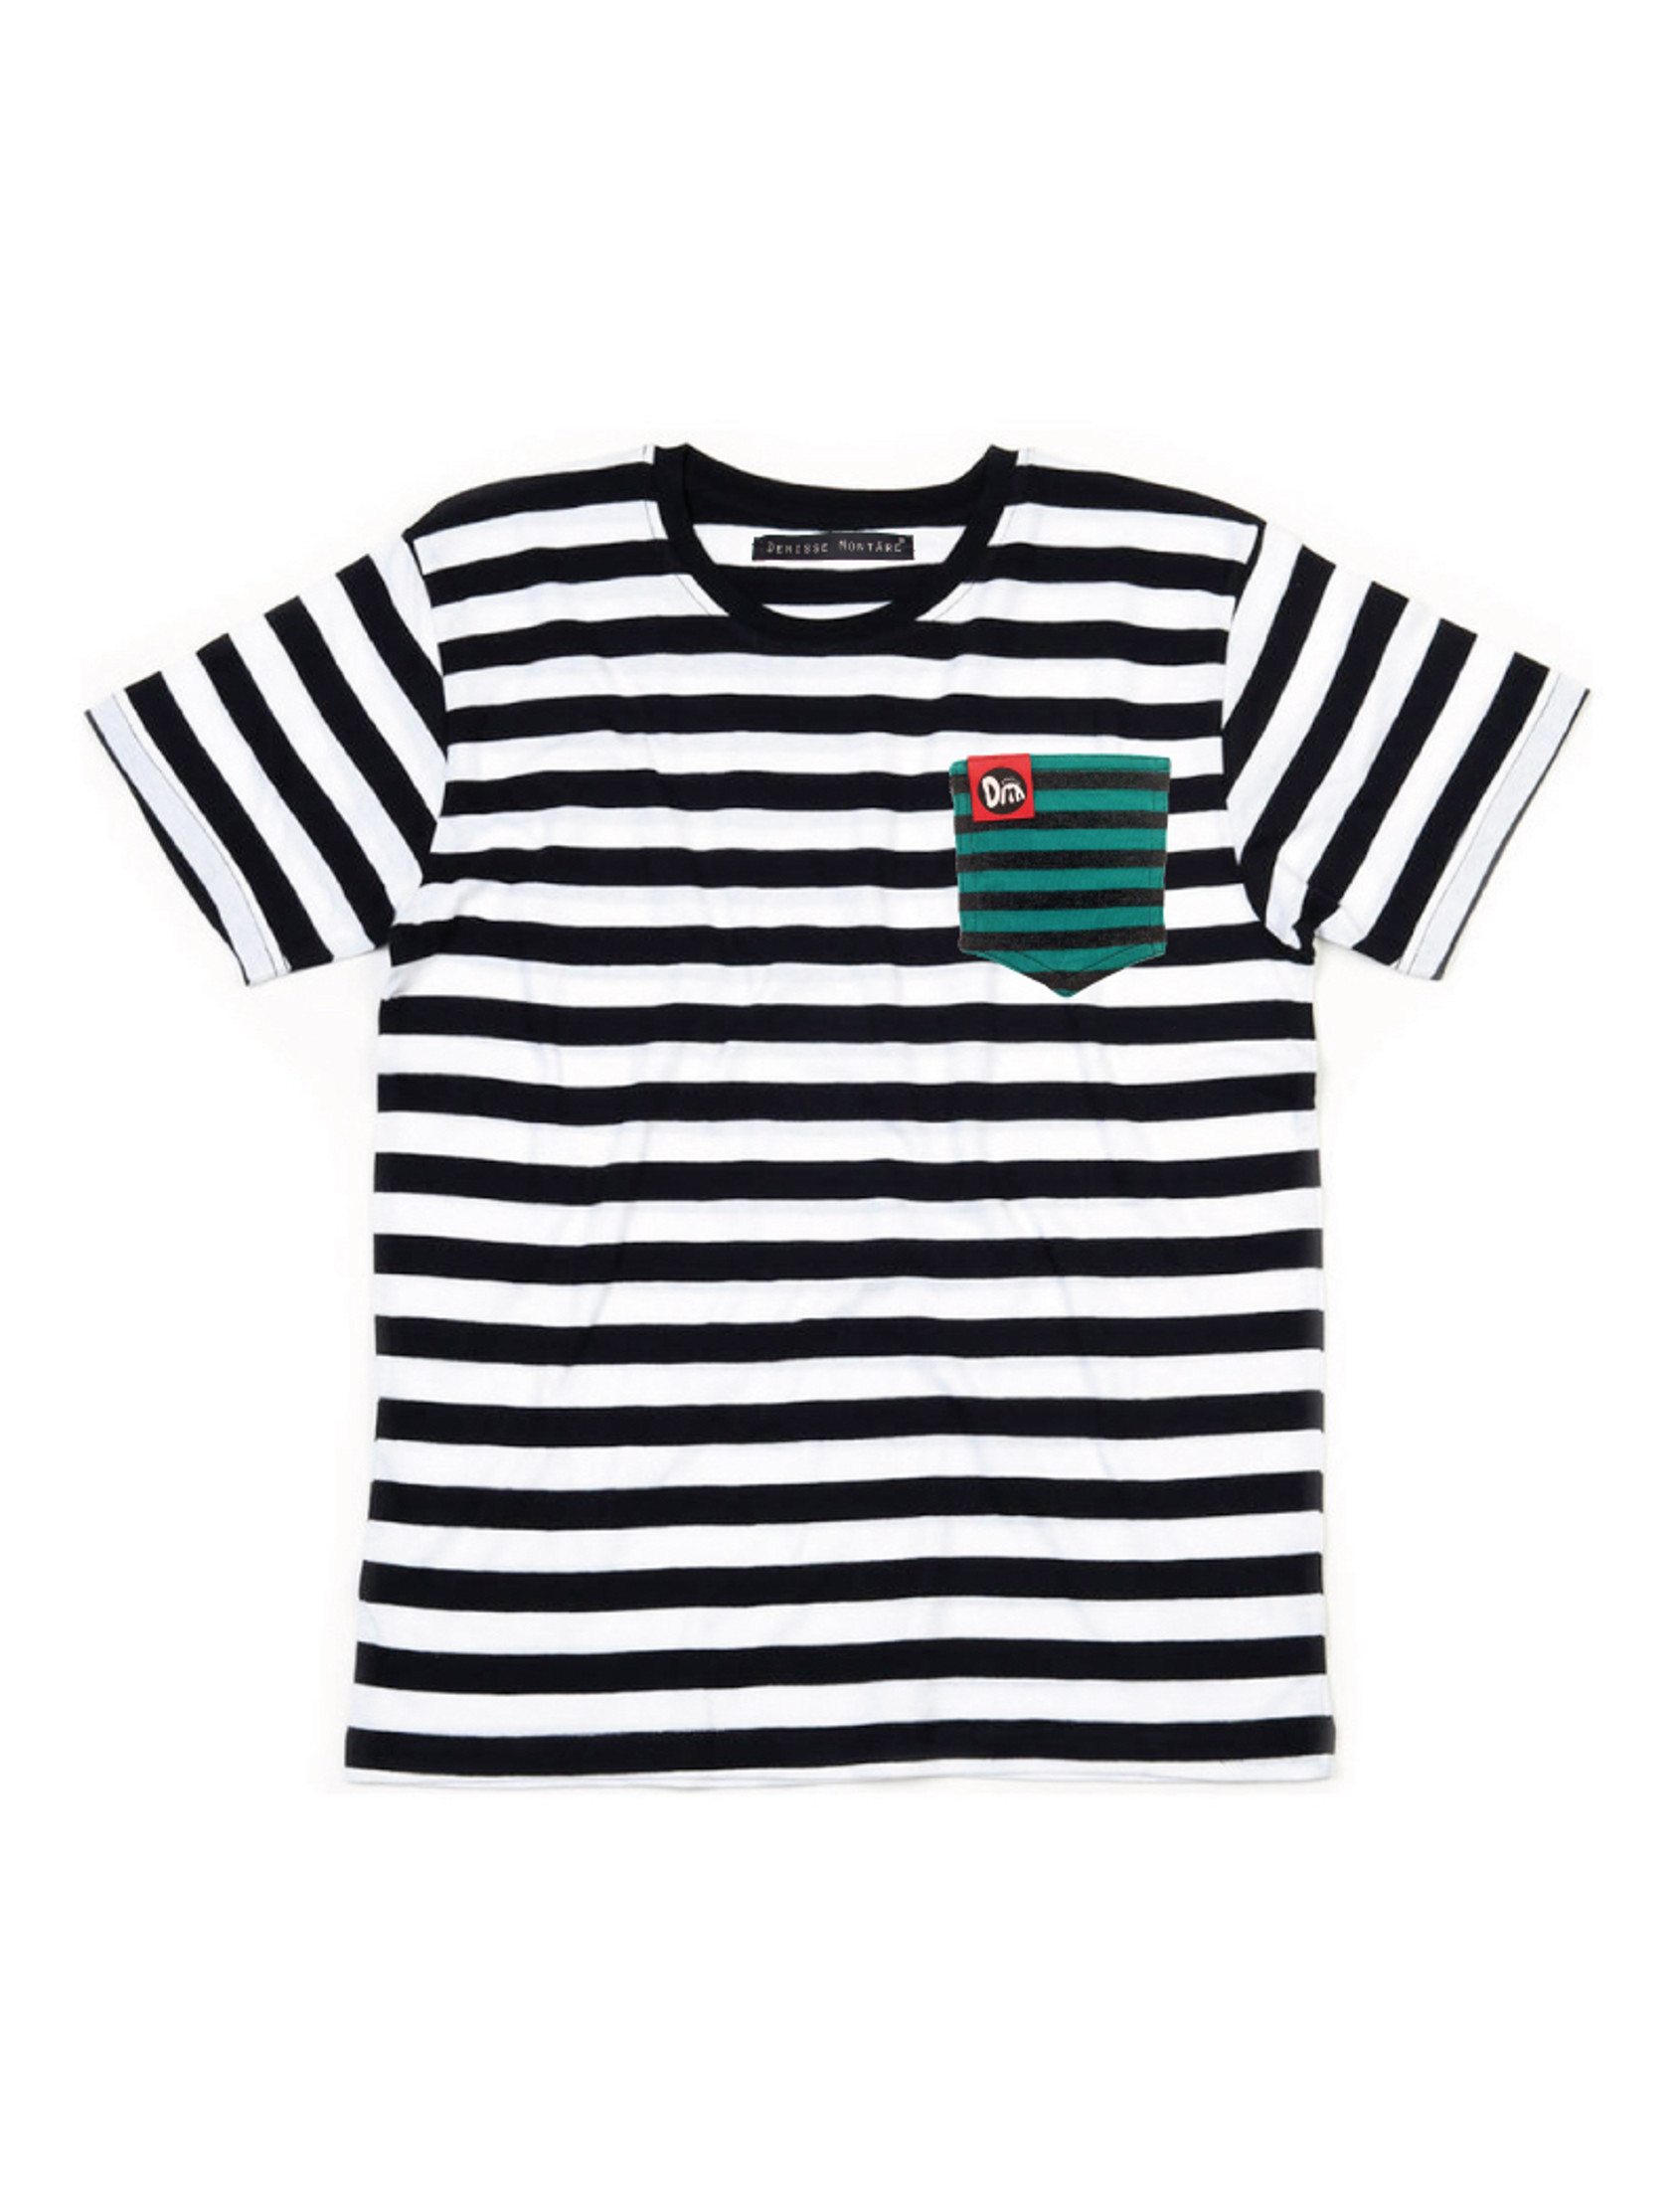 CamisetaGREENSTRiPESPOCKET_01